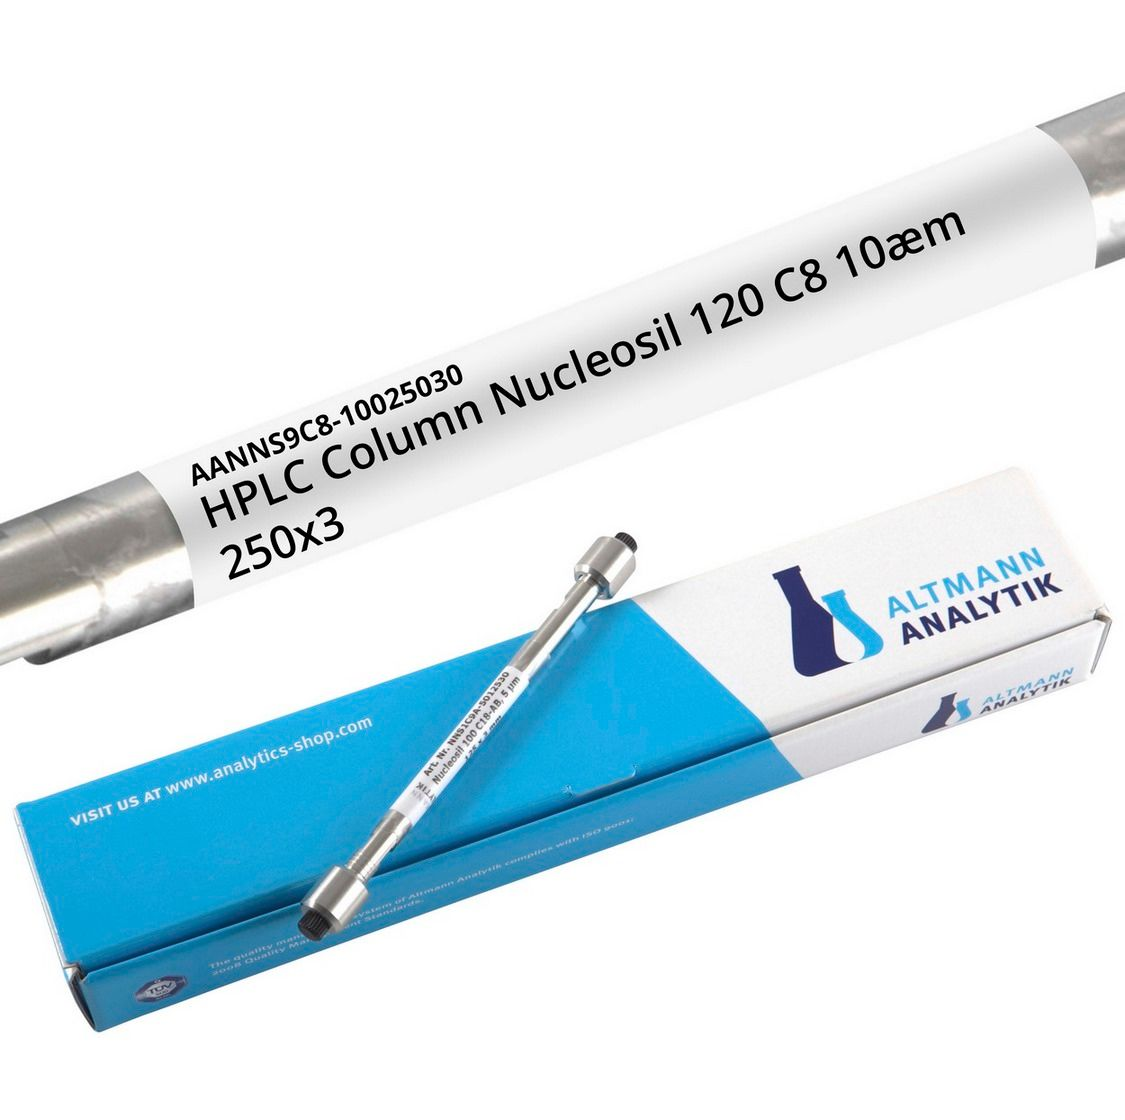 HPLC Column Nucleosil 120 C8 10µm 250x3 mm, 120A